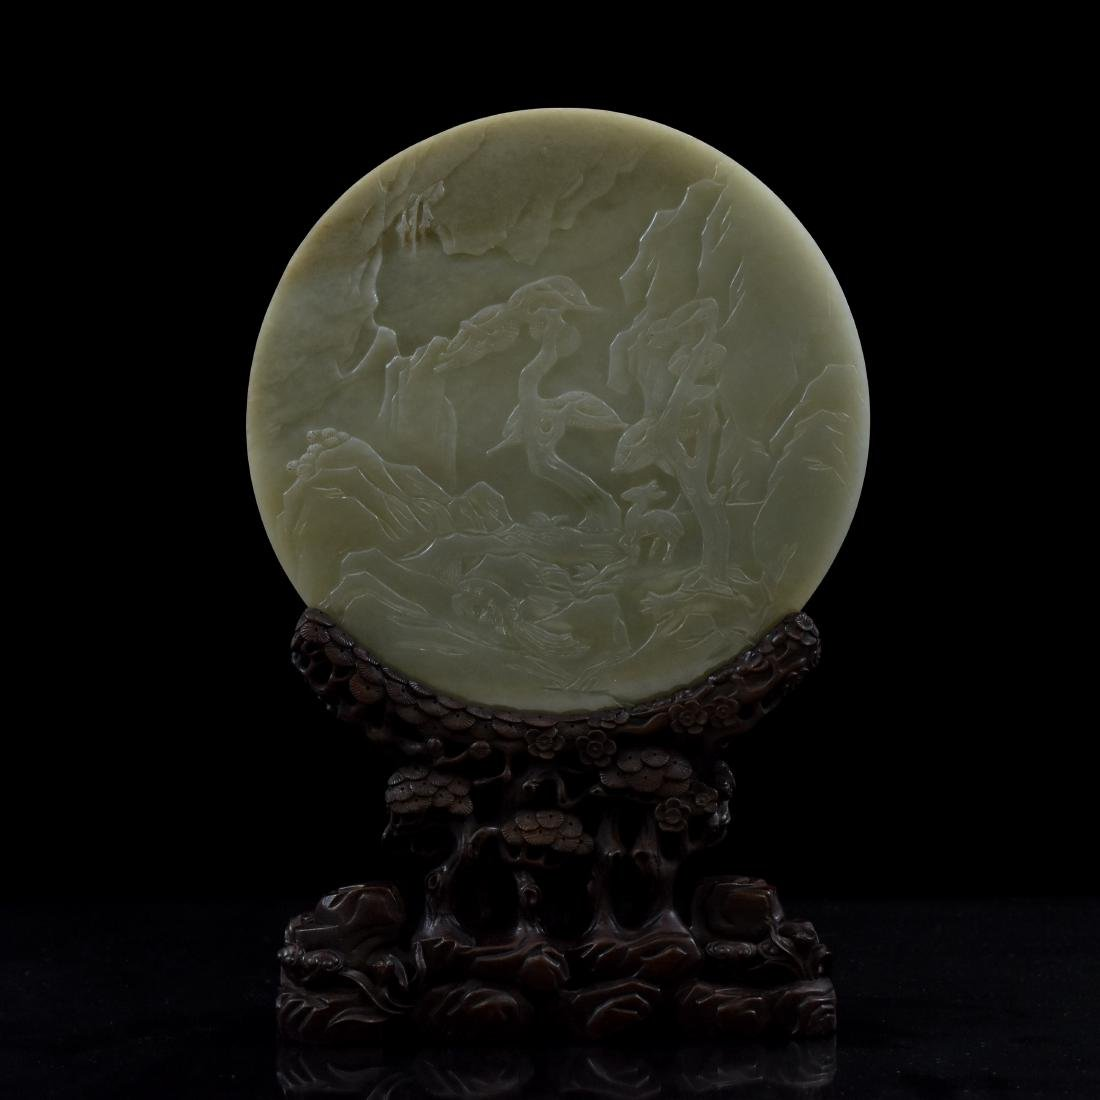 TWO SIDES PANORAMIC CIRCULAR JADE TABLE SCREEN - 5